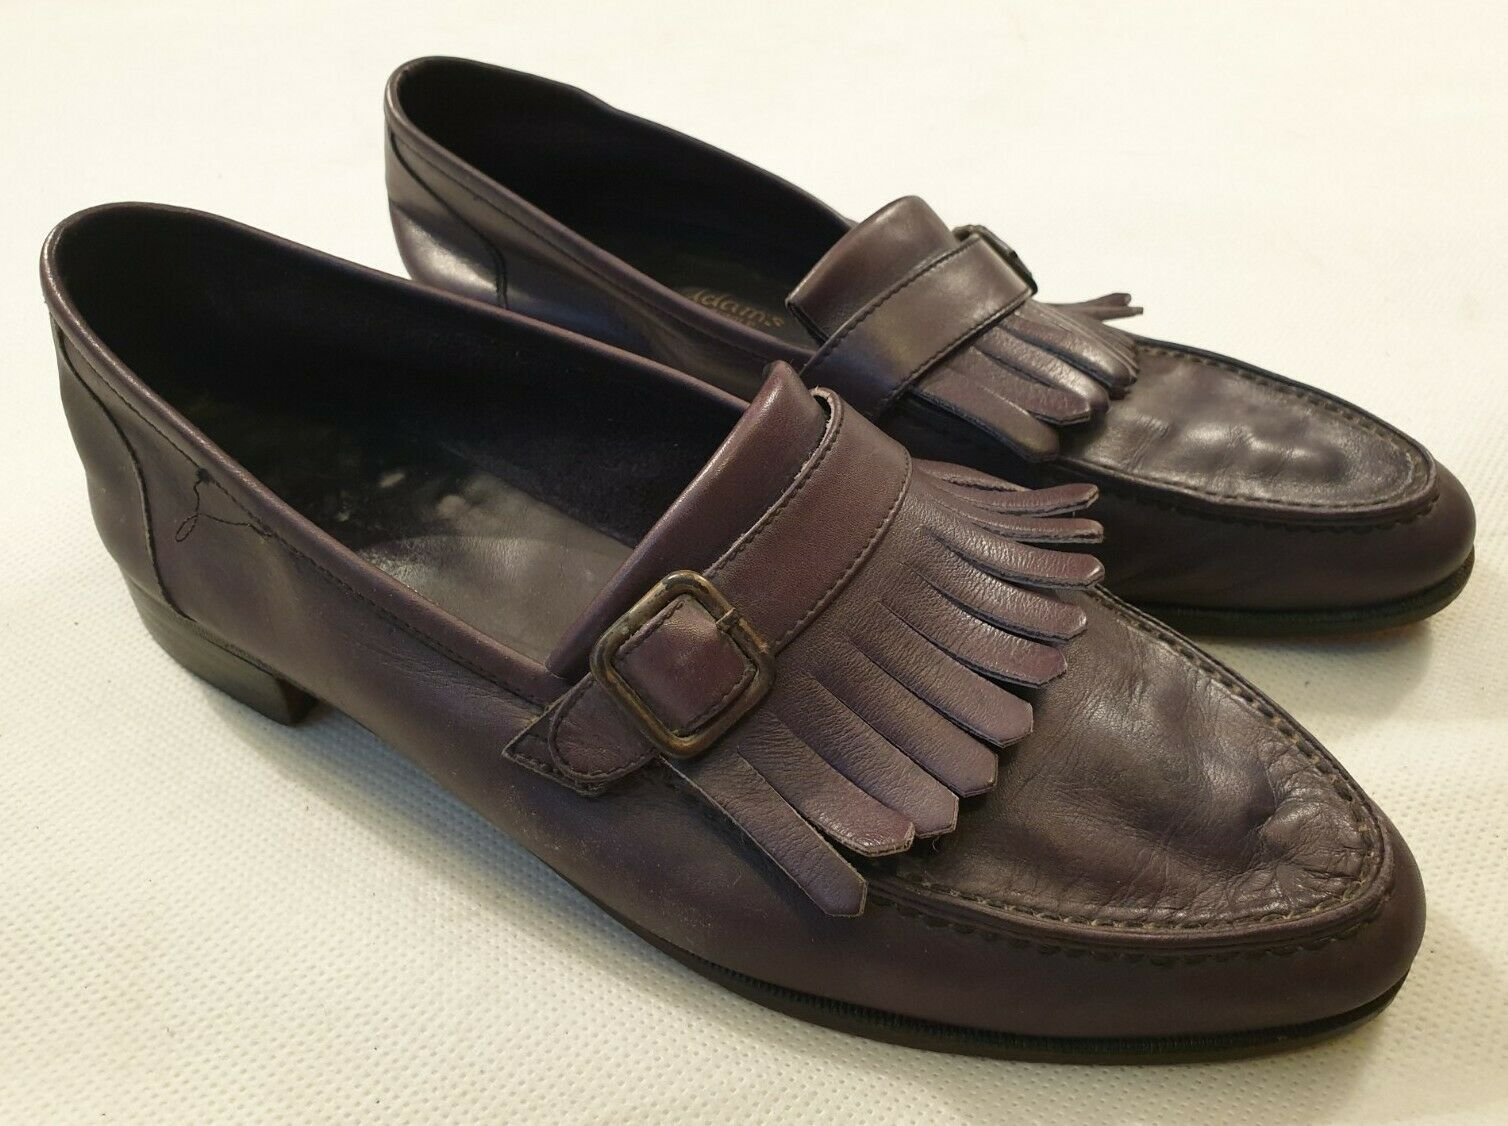 Stacey Adams Leather Loafer Shoes with Kiltie Tassles and Buckle UK Size 8.5